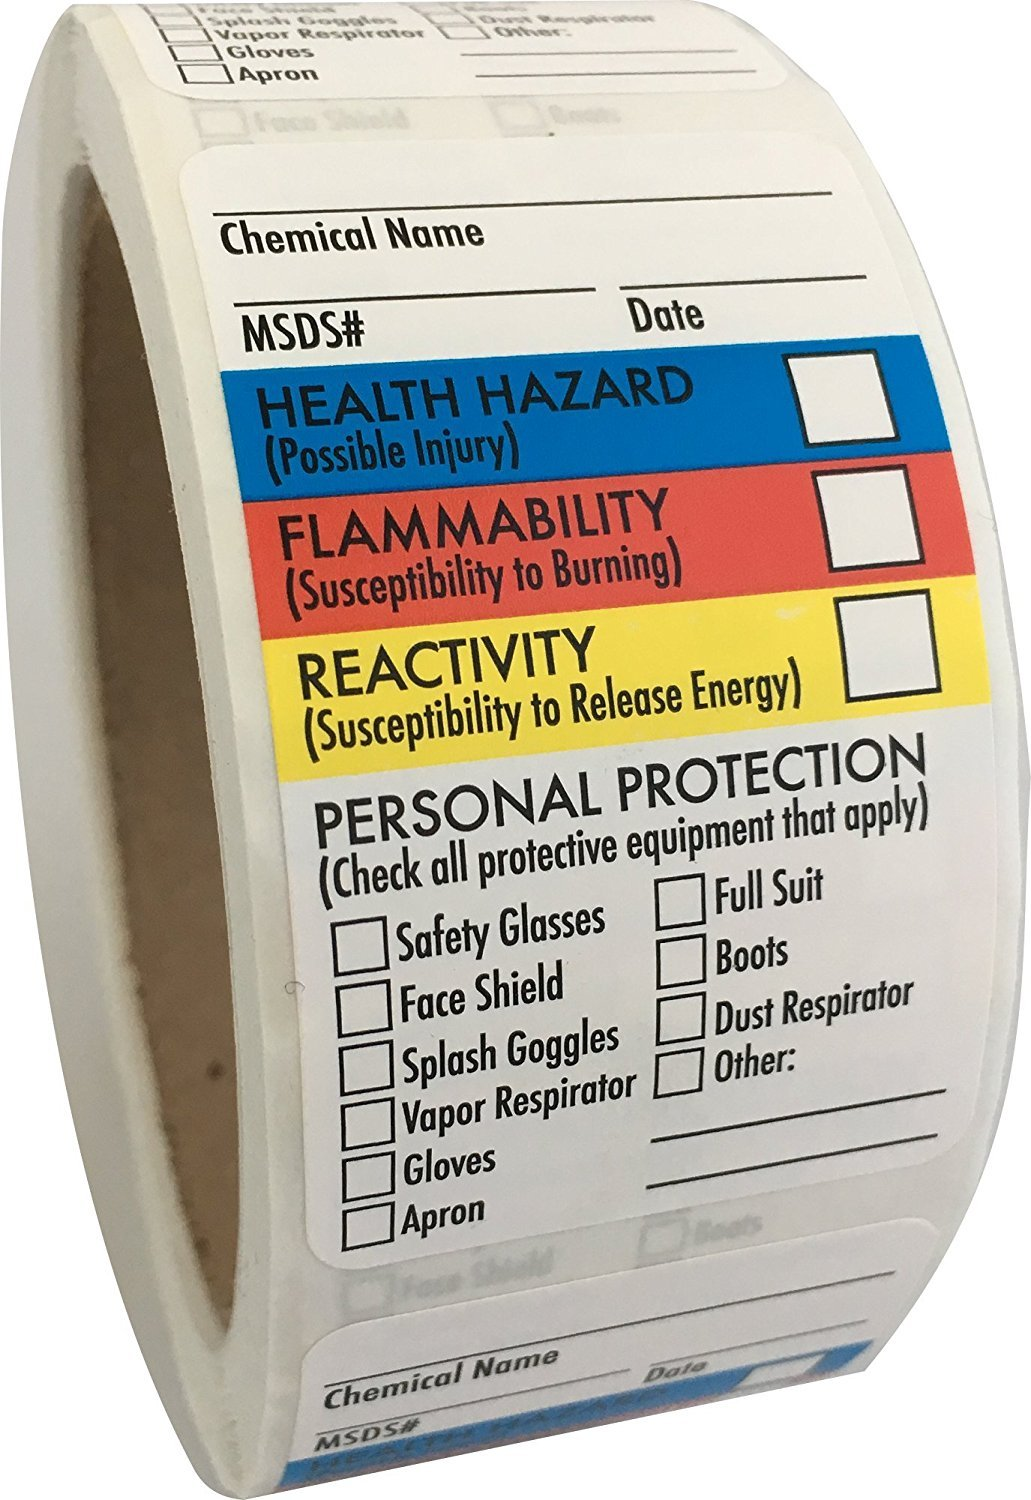 "2 Rolls of SDS Stickers/MSDS Stickers, 250 l Labels Per Roll, 1.5""x2.5"", Right to Know - Chemical Identifying and Marking"